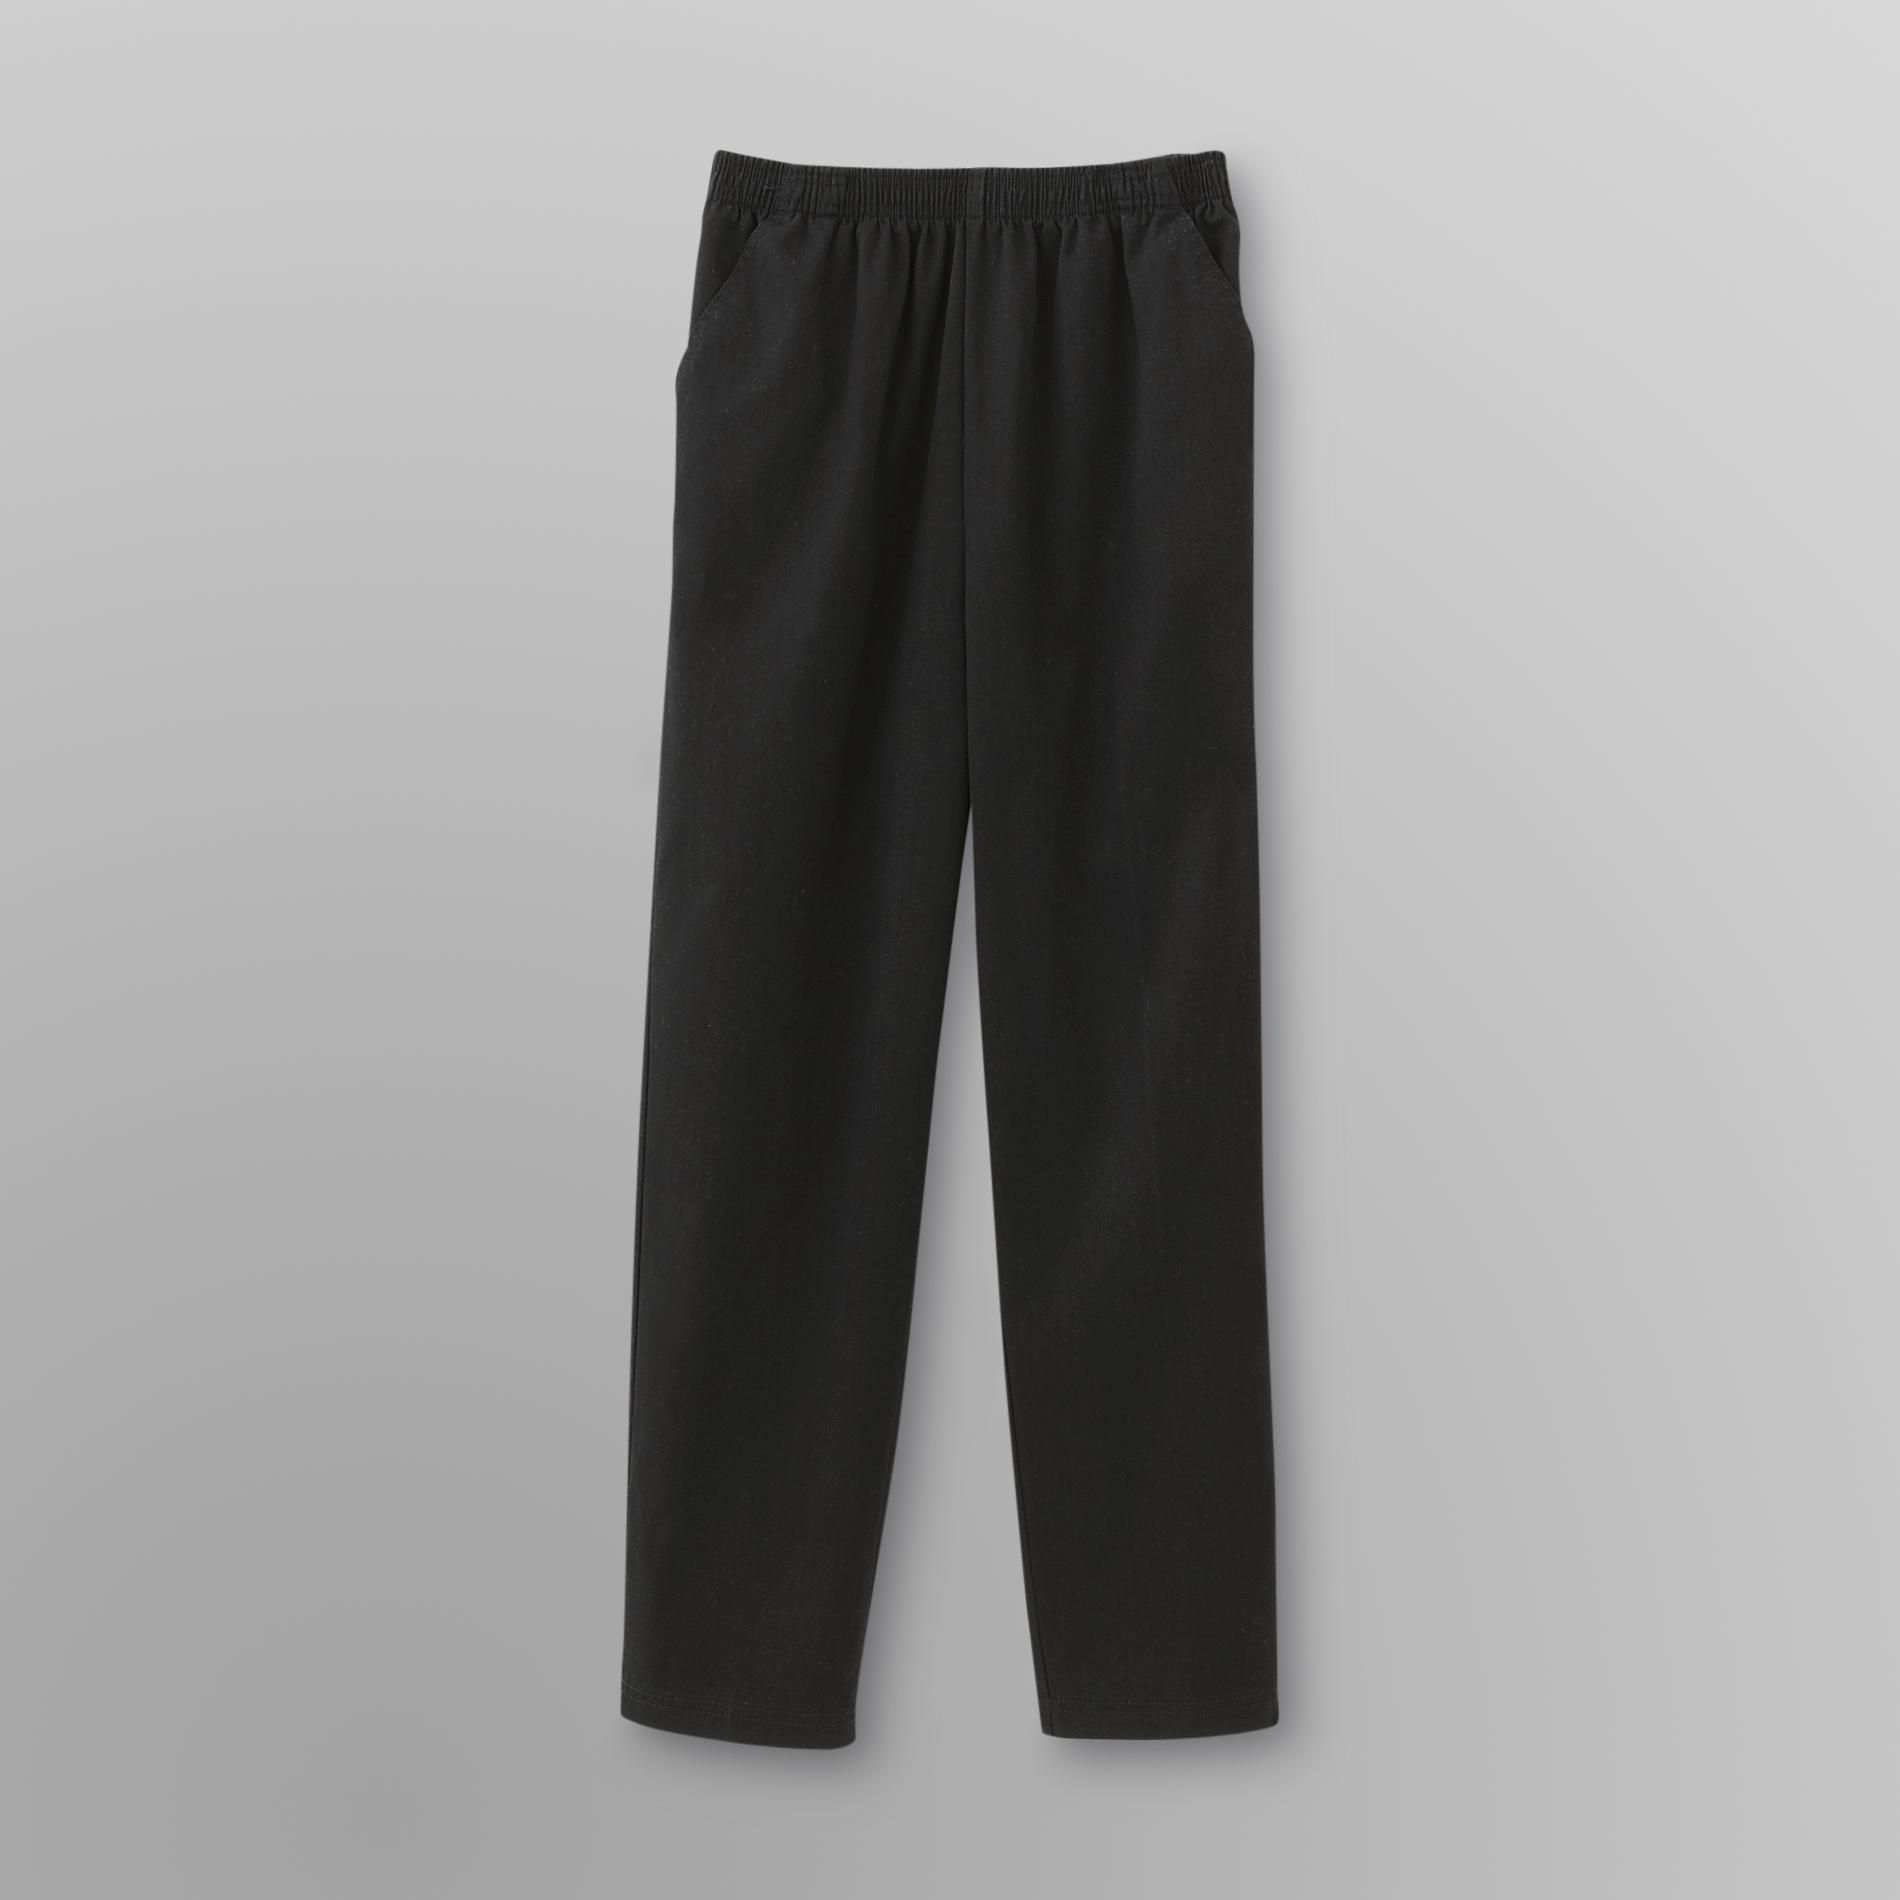 Laura Scott Women's Twill Stretch Pants at Sears.com